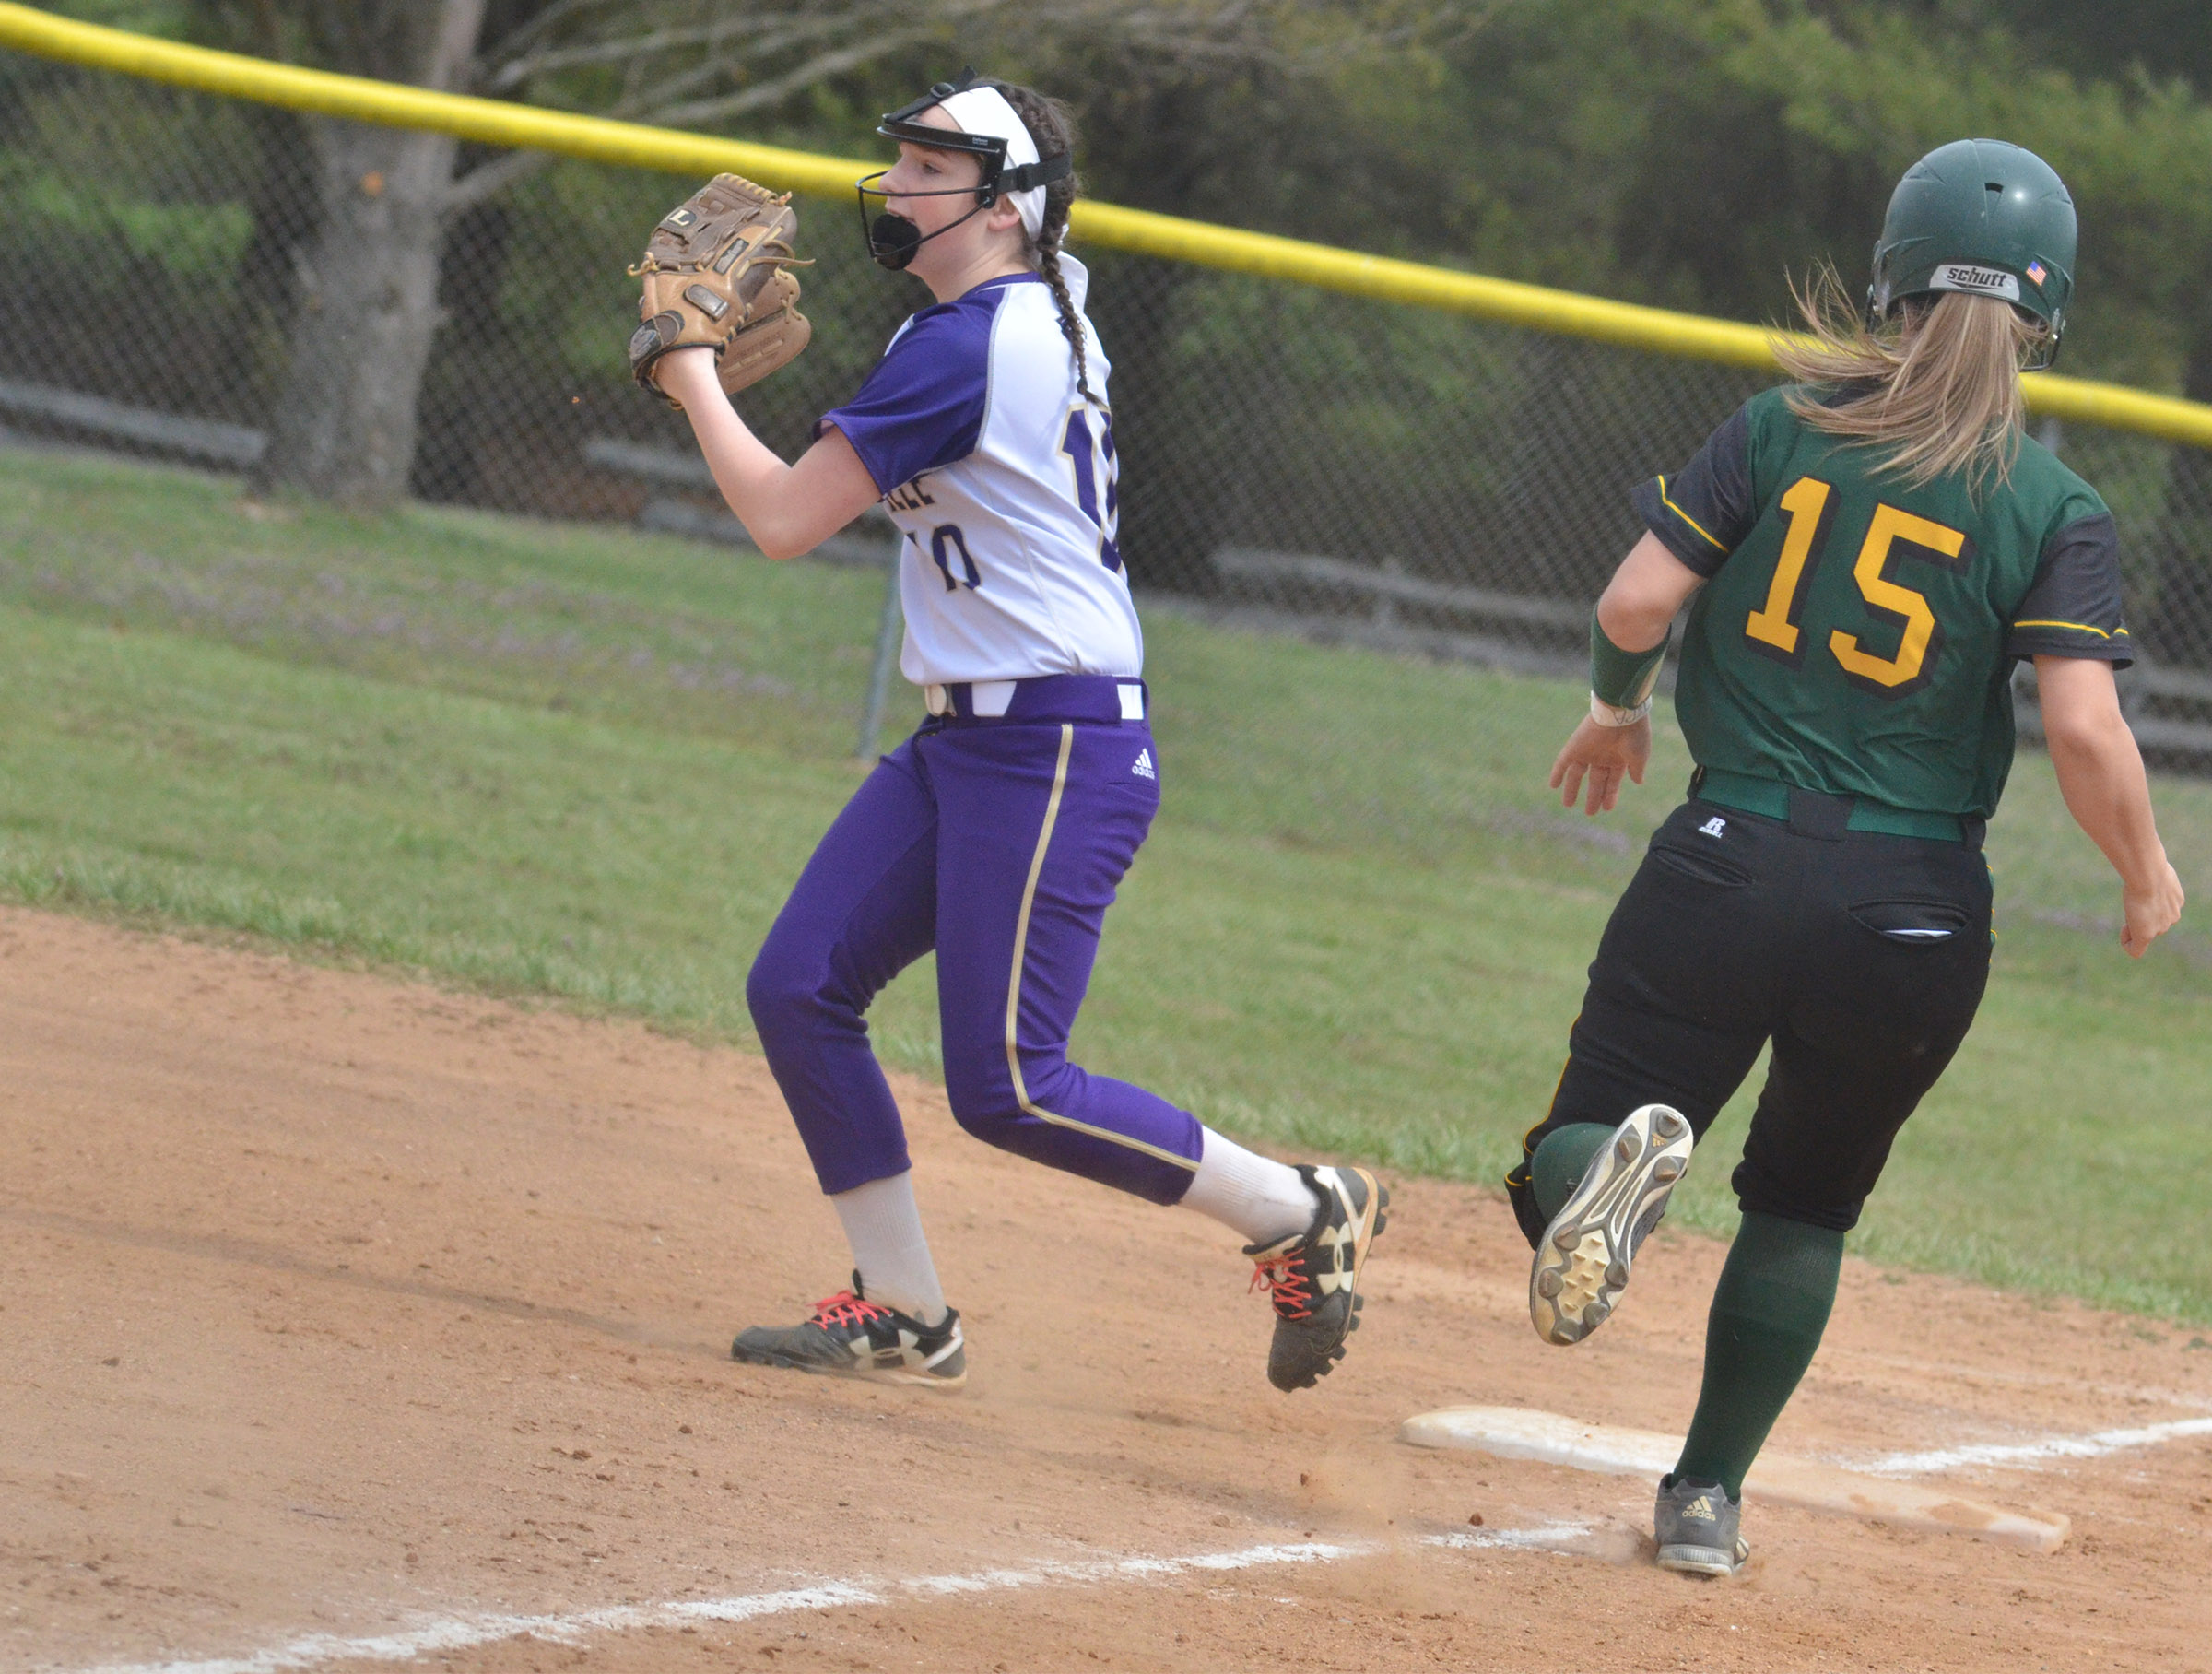 CHS freshman Sydney Wilson gets an out at first.